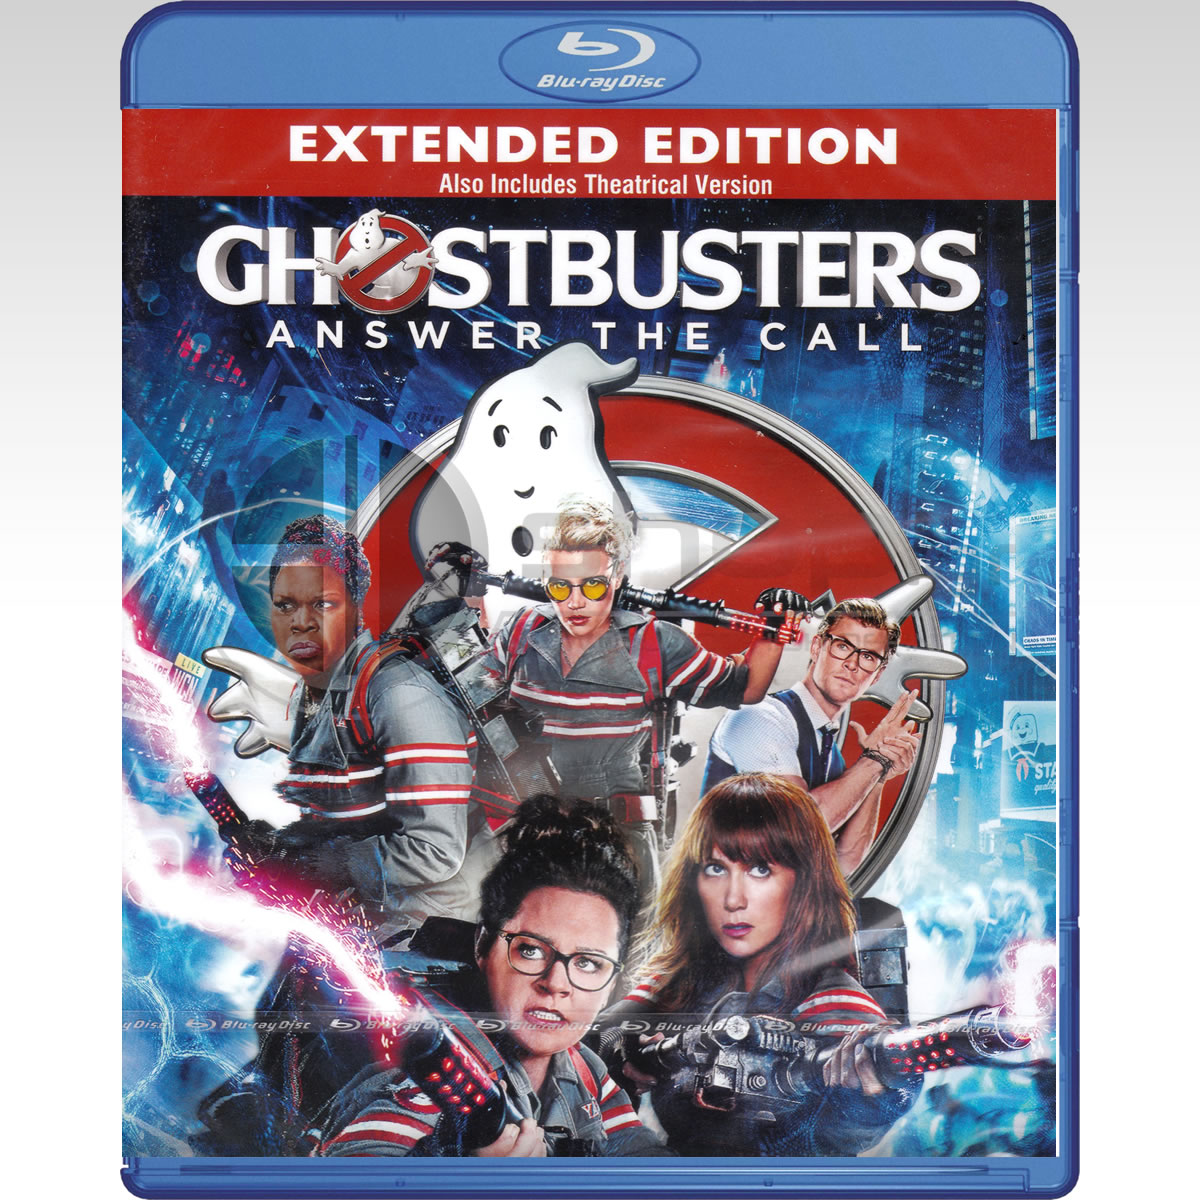 GHOSTBUSTERS [2016] Extended (BLU-RAY)